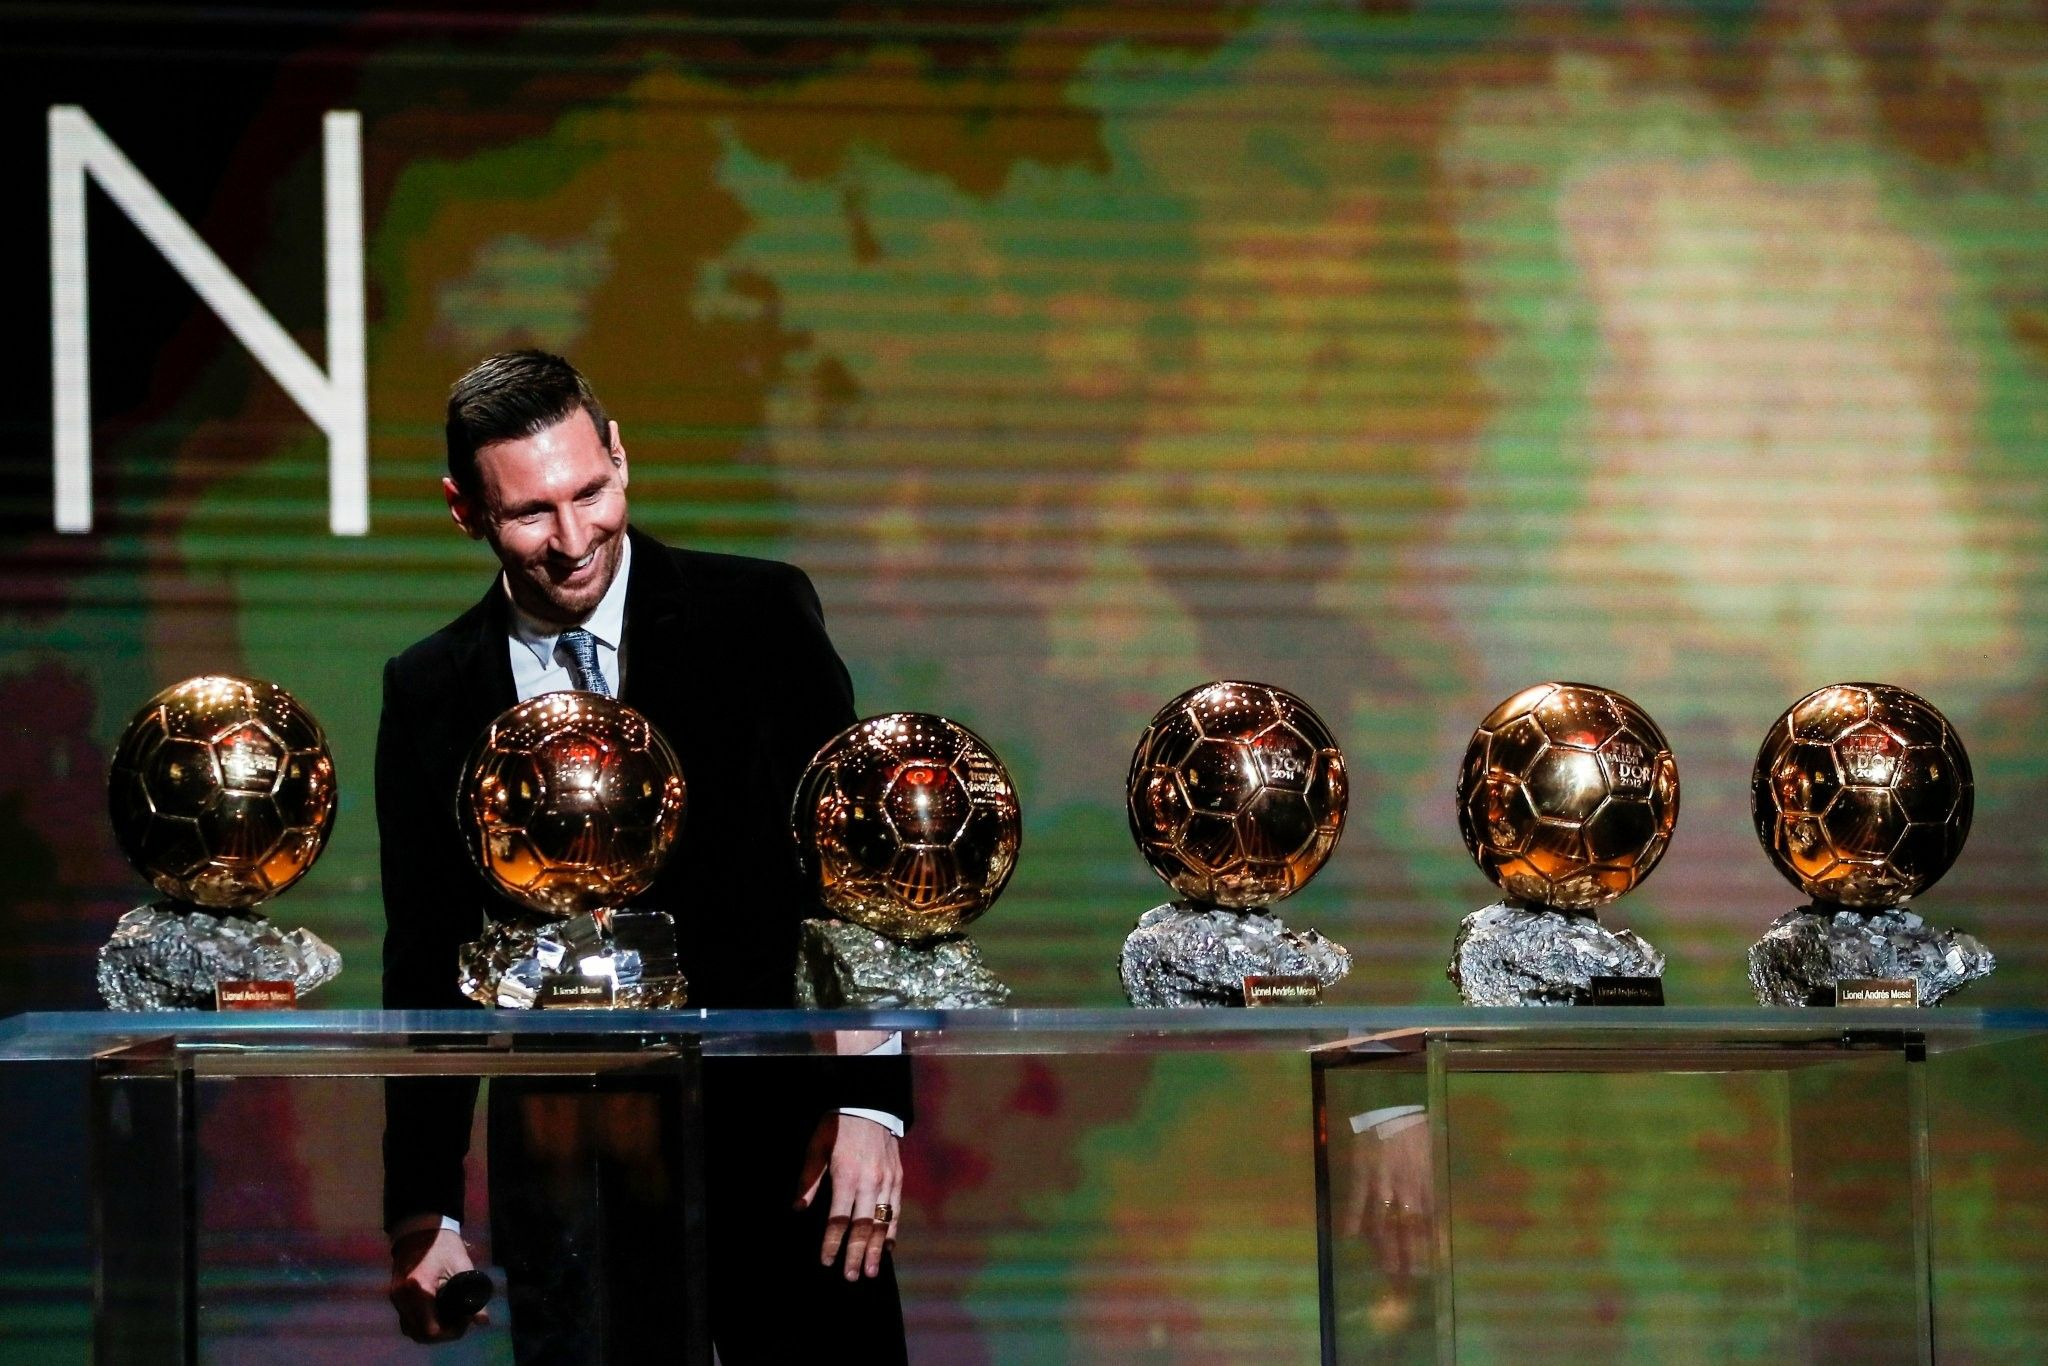 Messi 6 Ballons D Or Lionel Messi Messi Ballon D Or